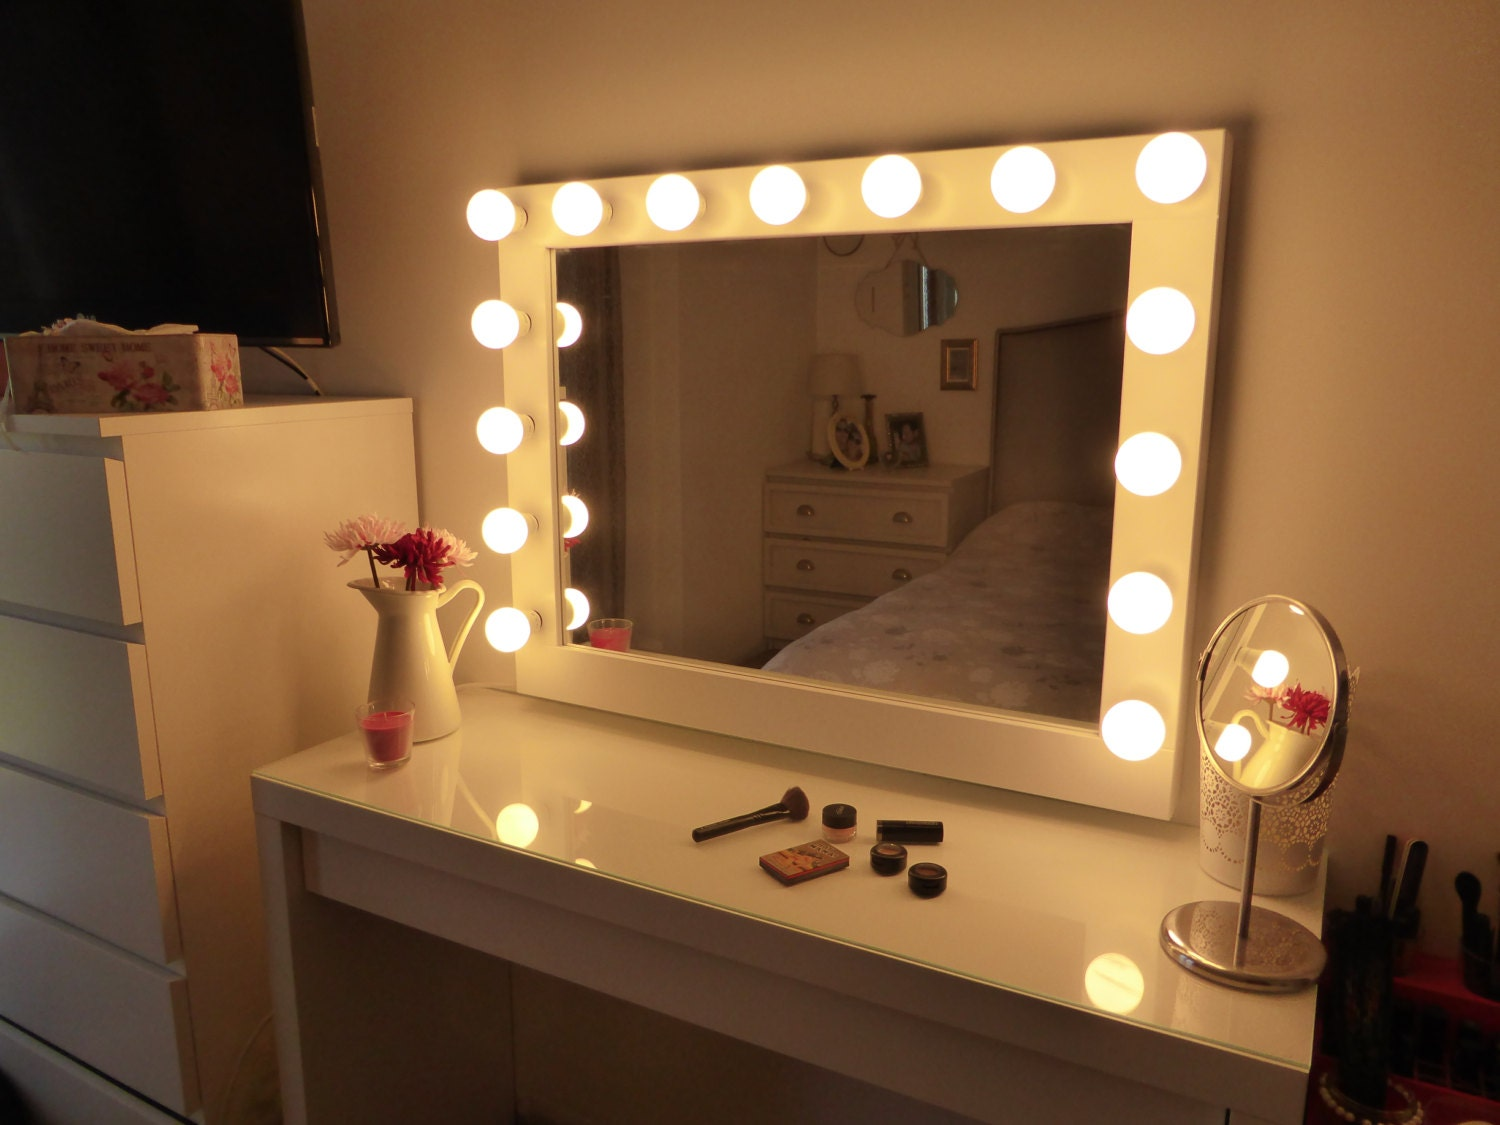 Vanity Lights Hollywood : Hollywood lighted vanity mirror-large makeup mirror with